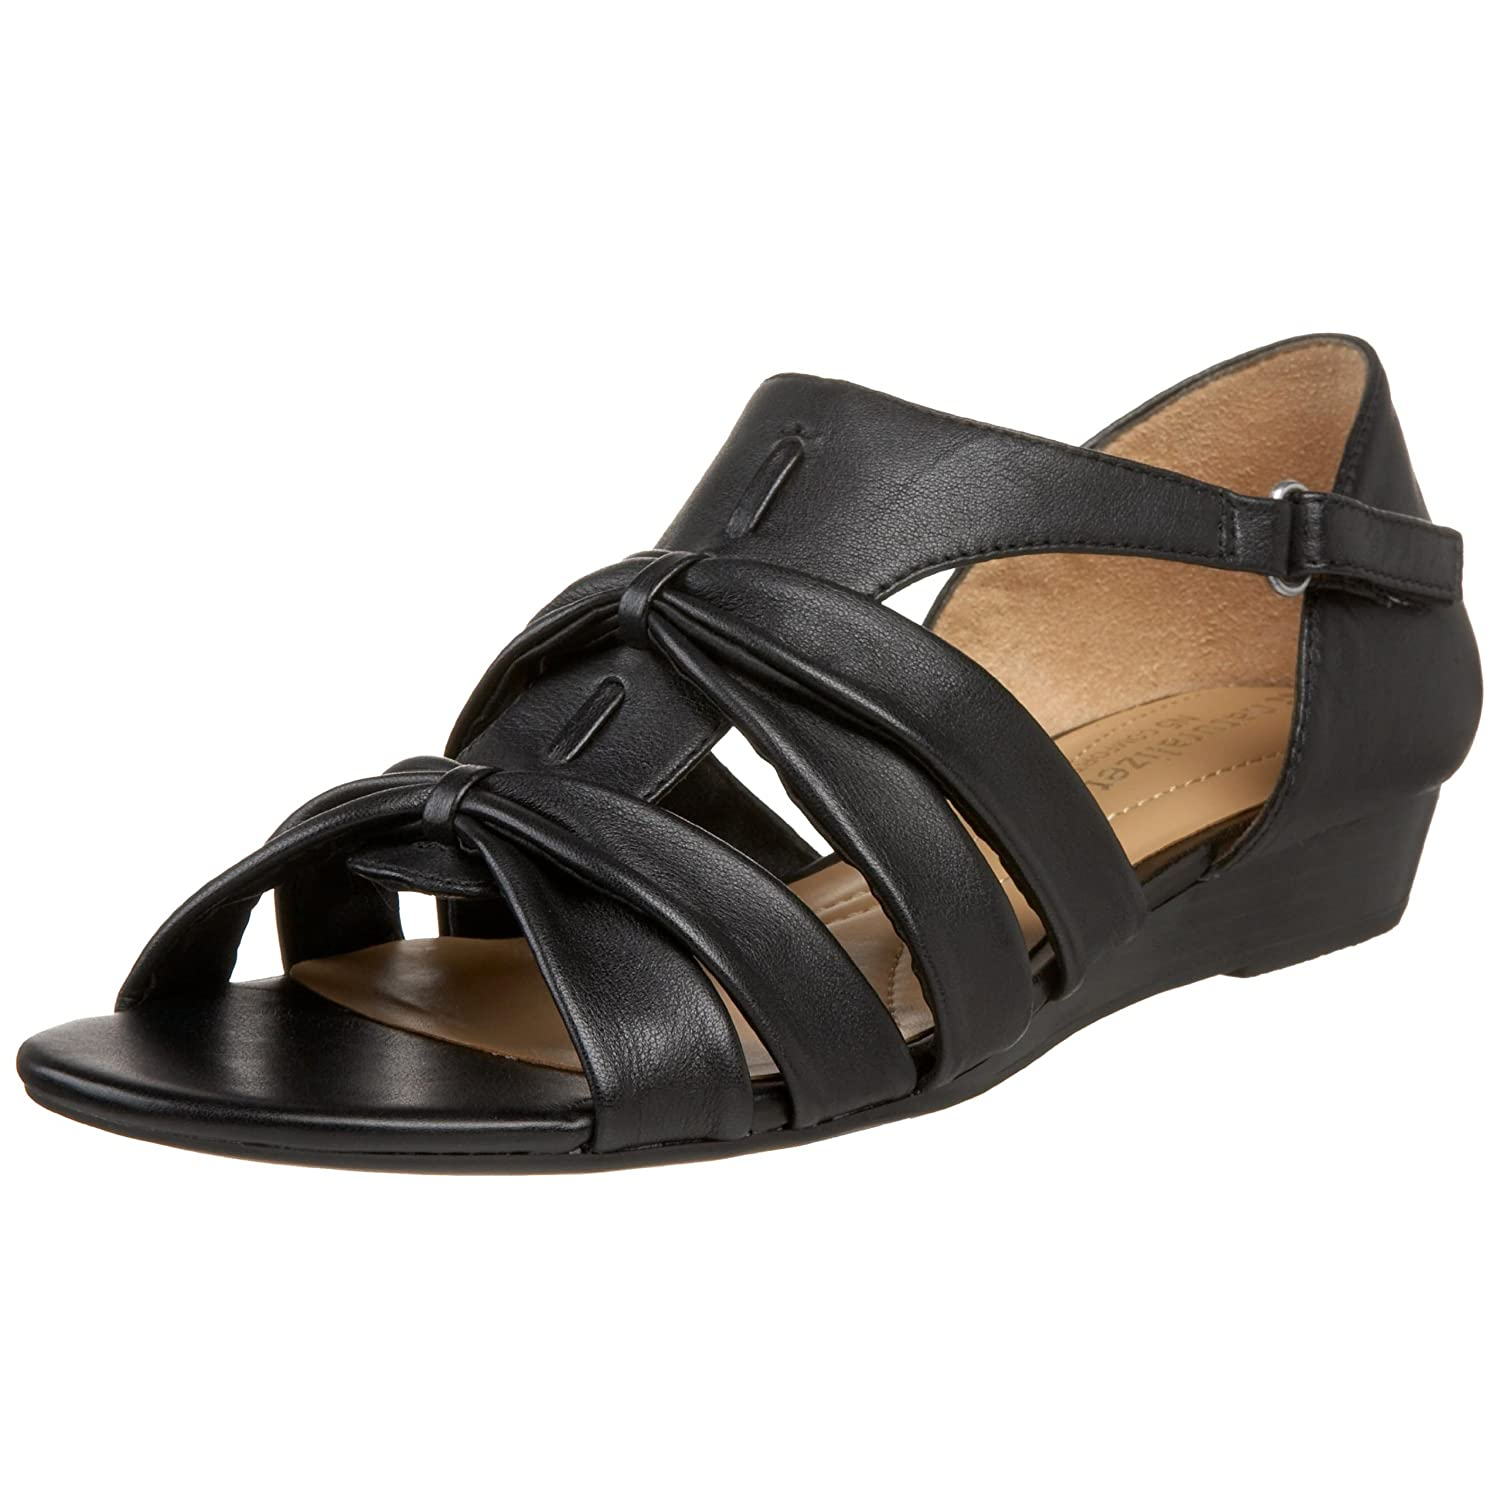 Naturalizer Women's Joslin Strappy Sandal B002GU7SZM 5.5 B(M) US|Black